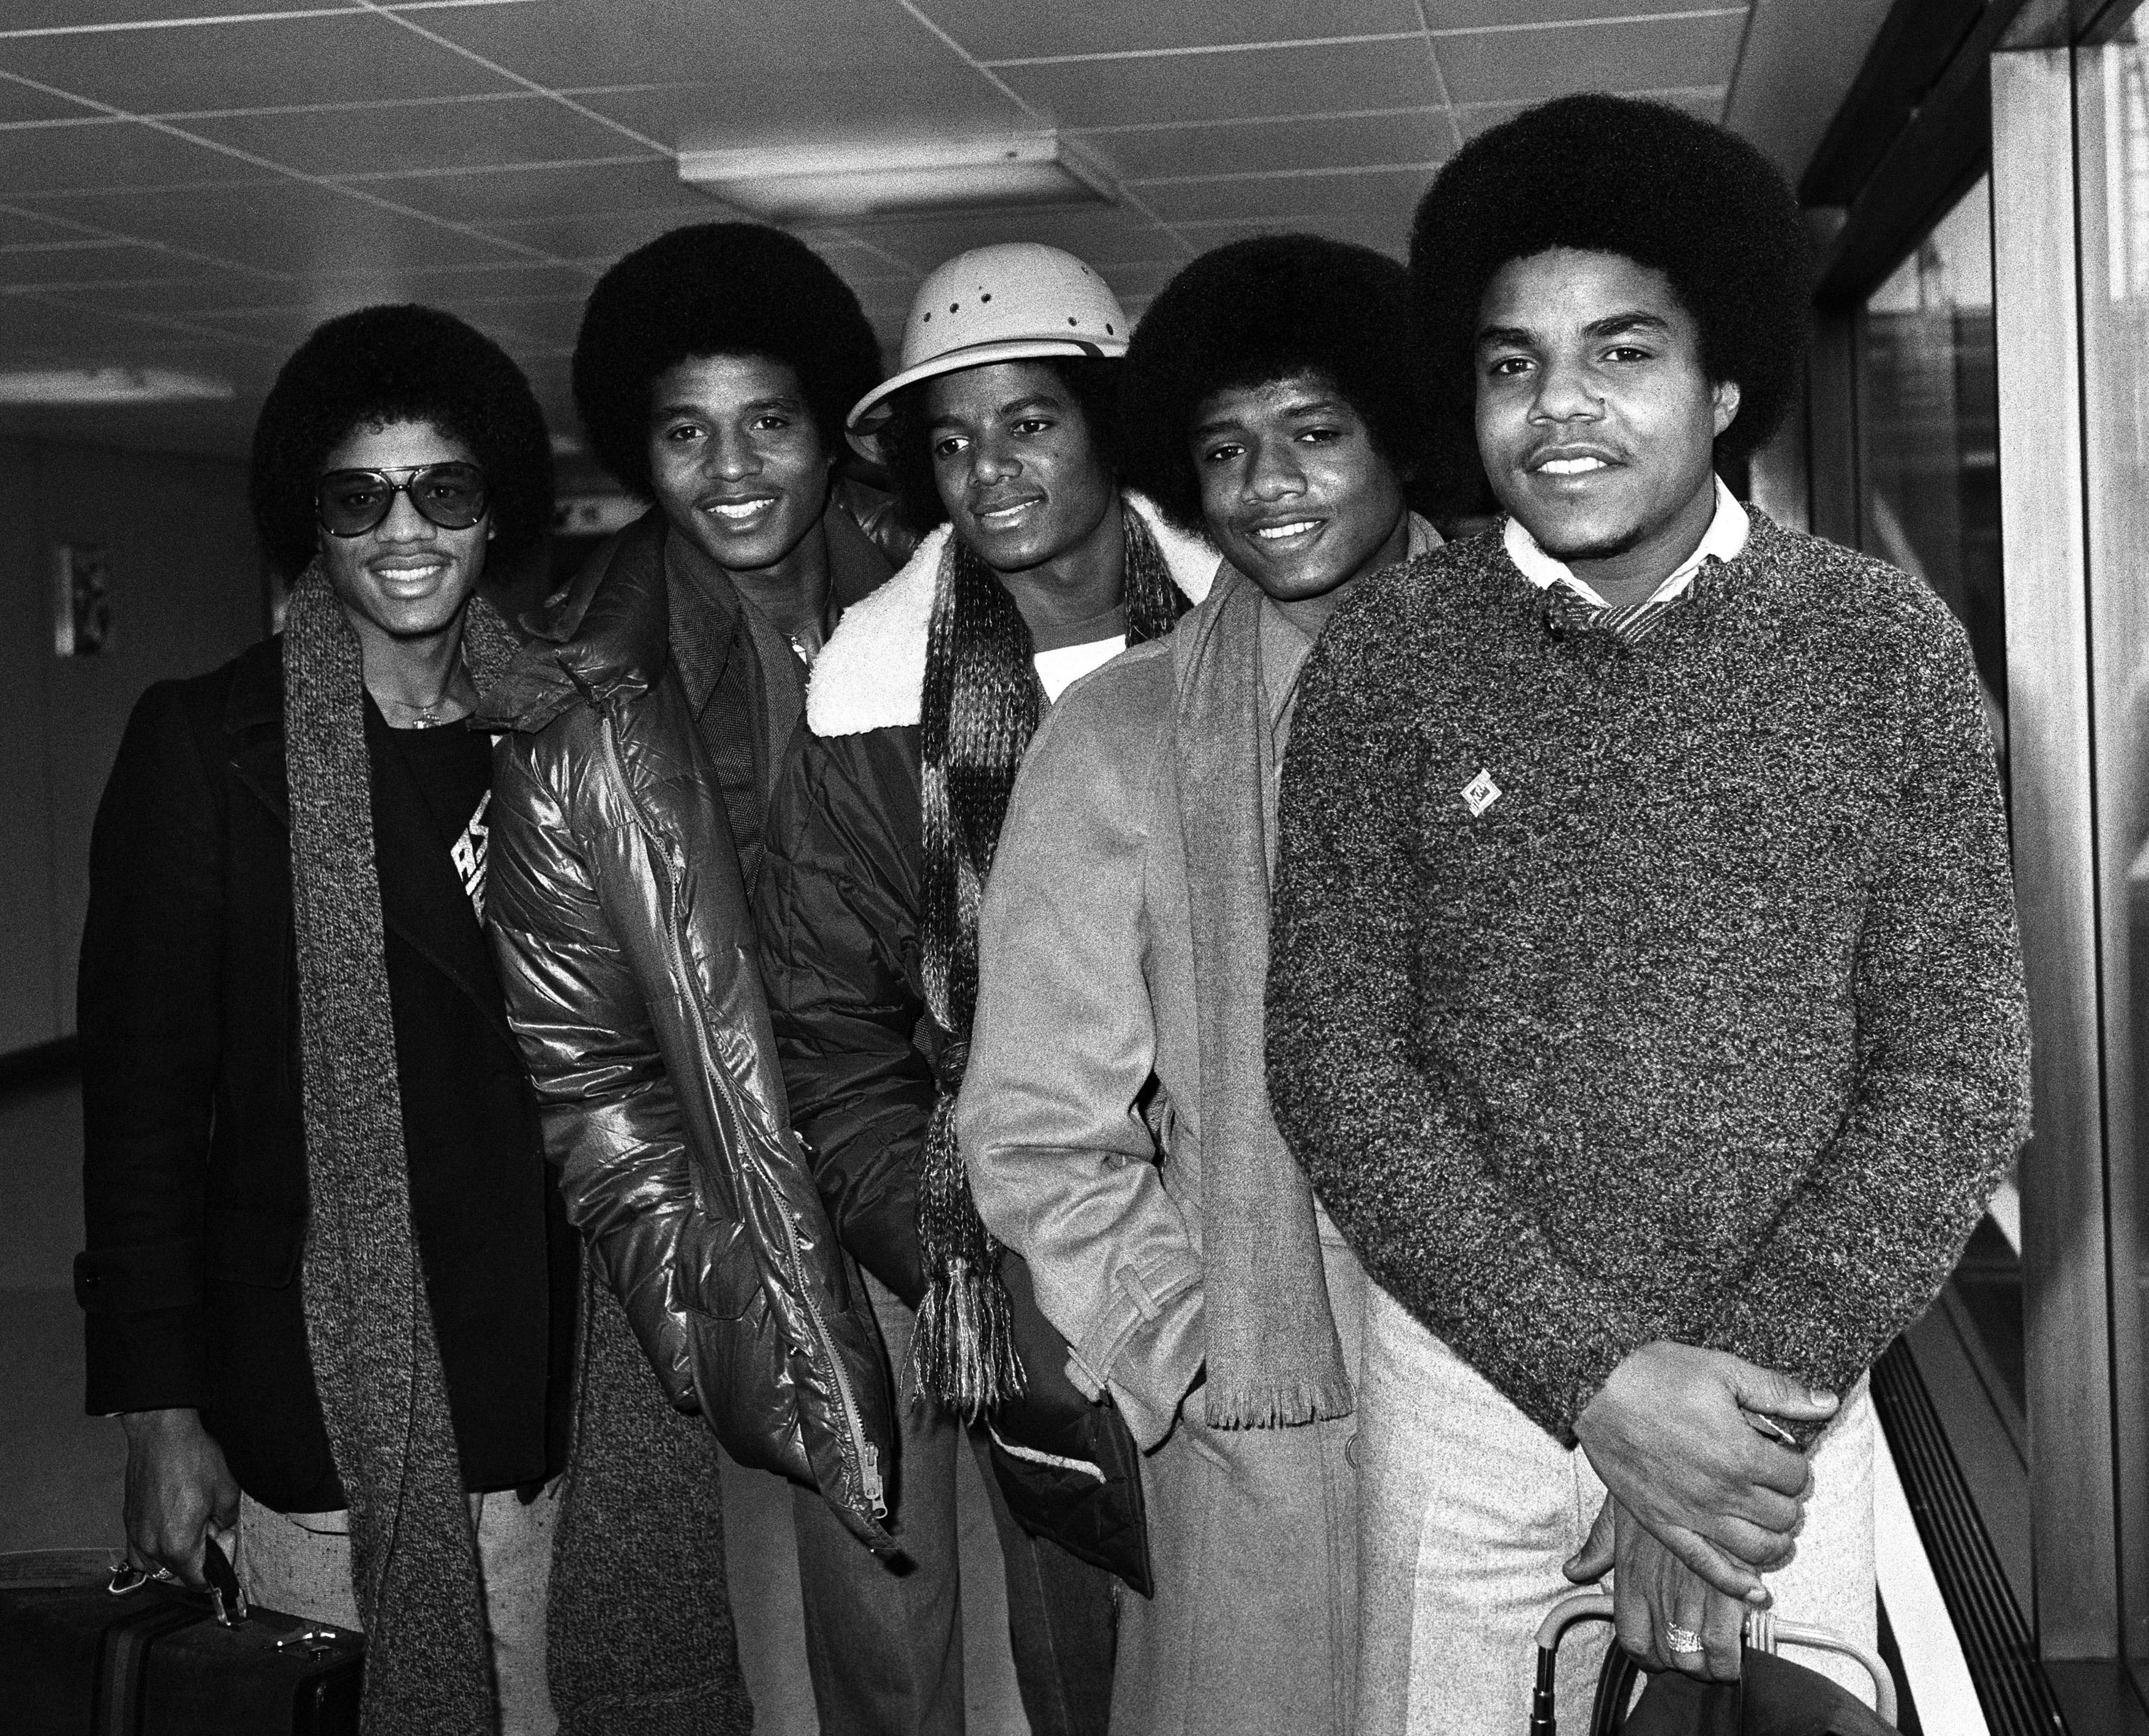 The Jacksons at Heathrow Airport in 1979 (PA Archive/PA)